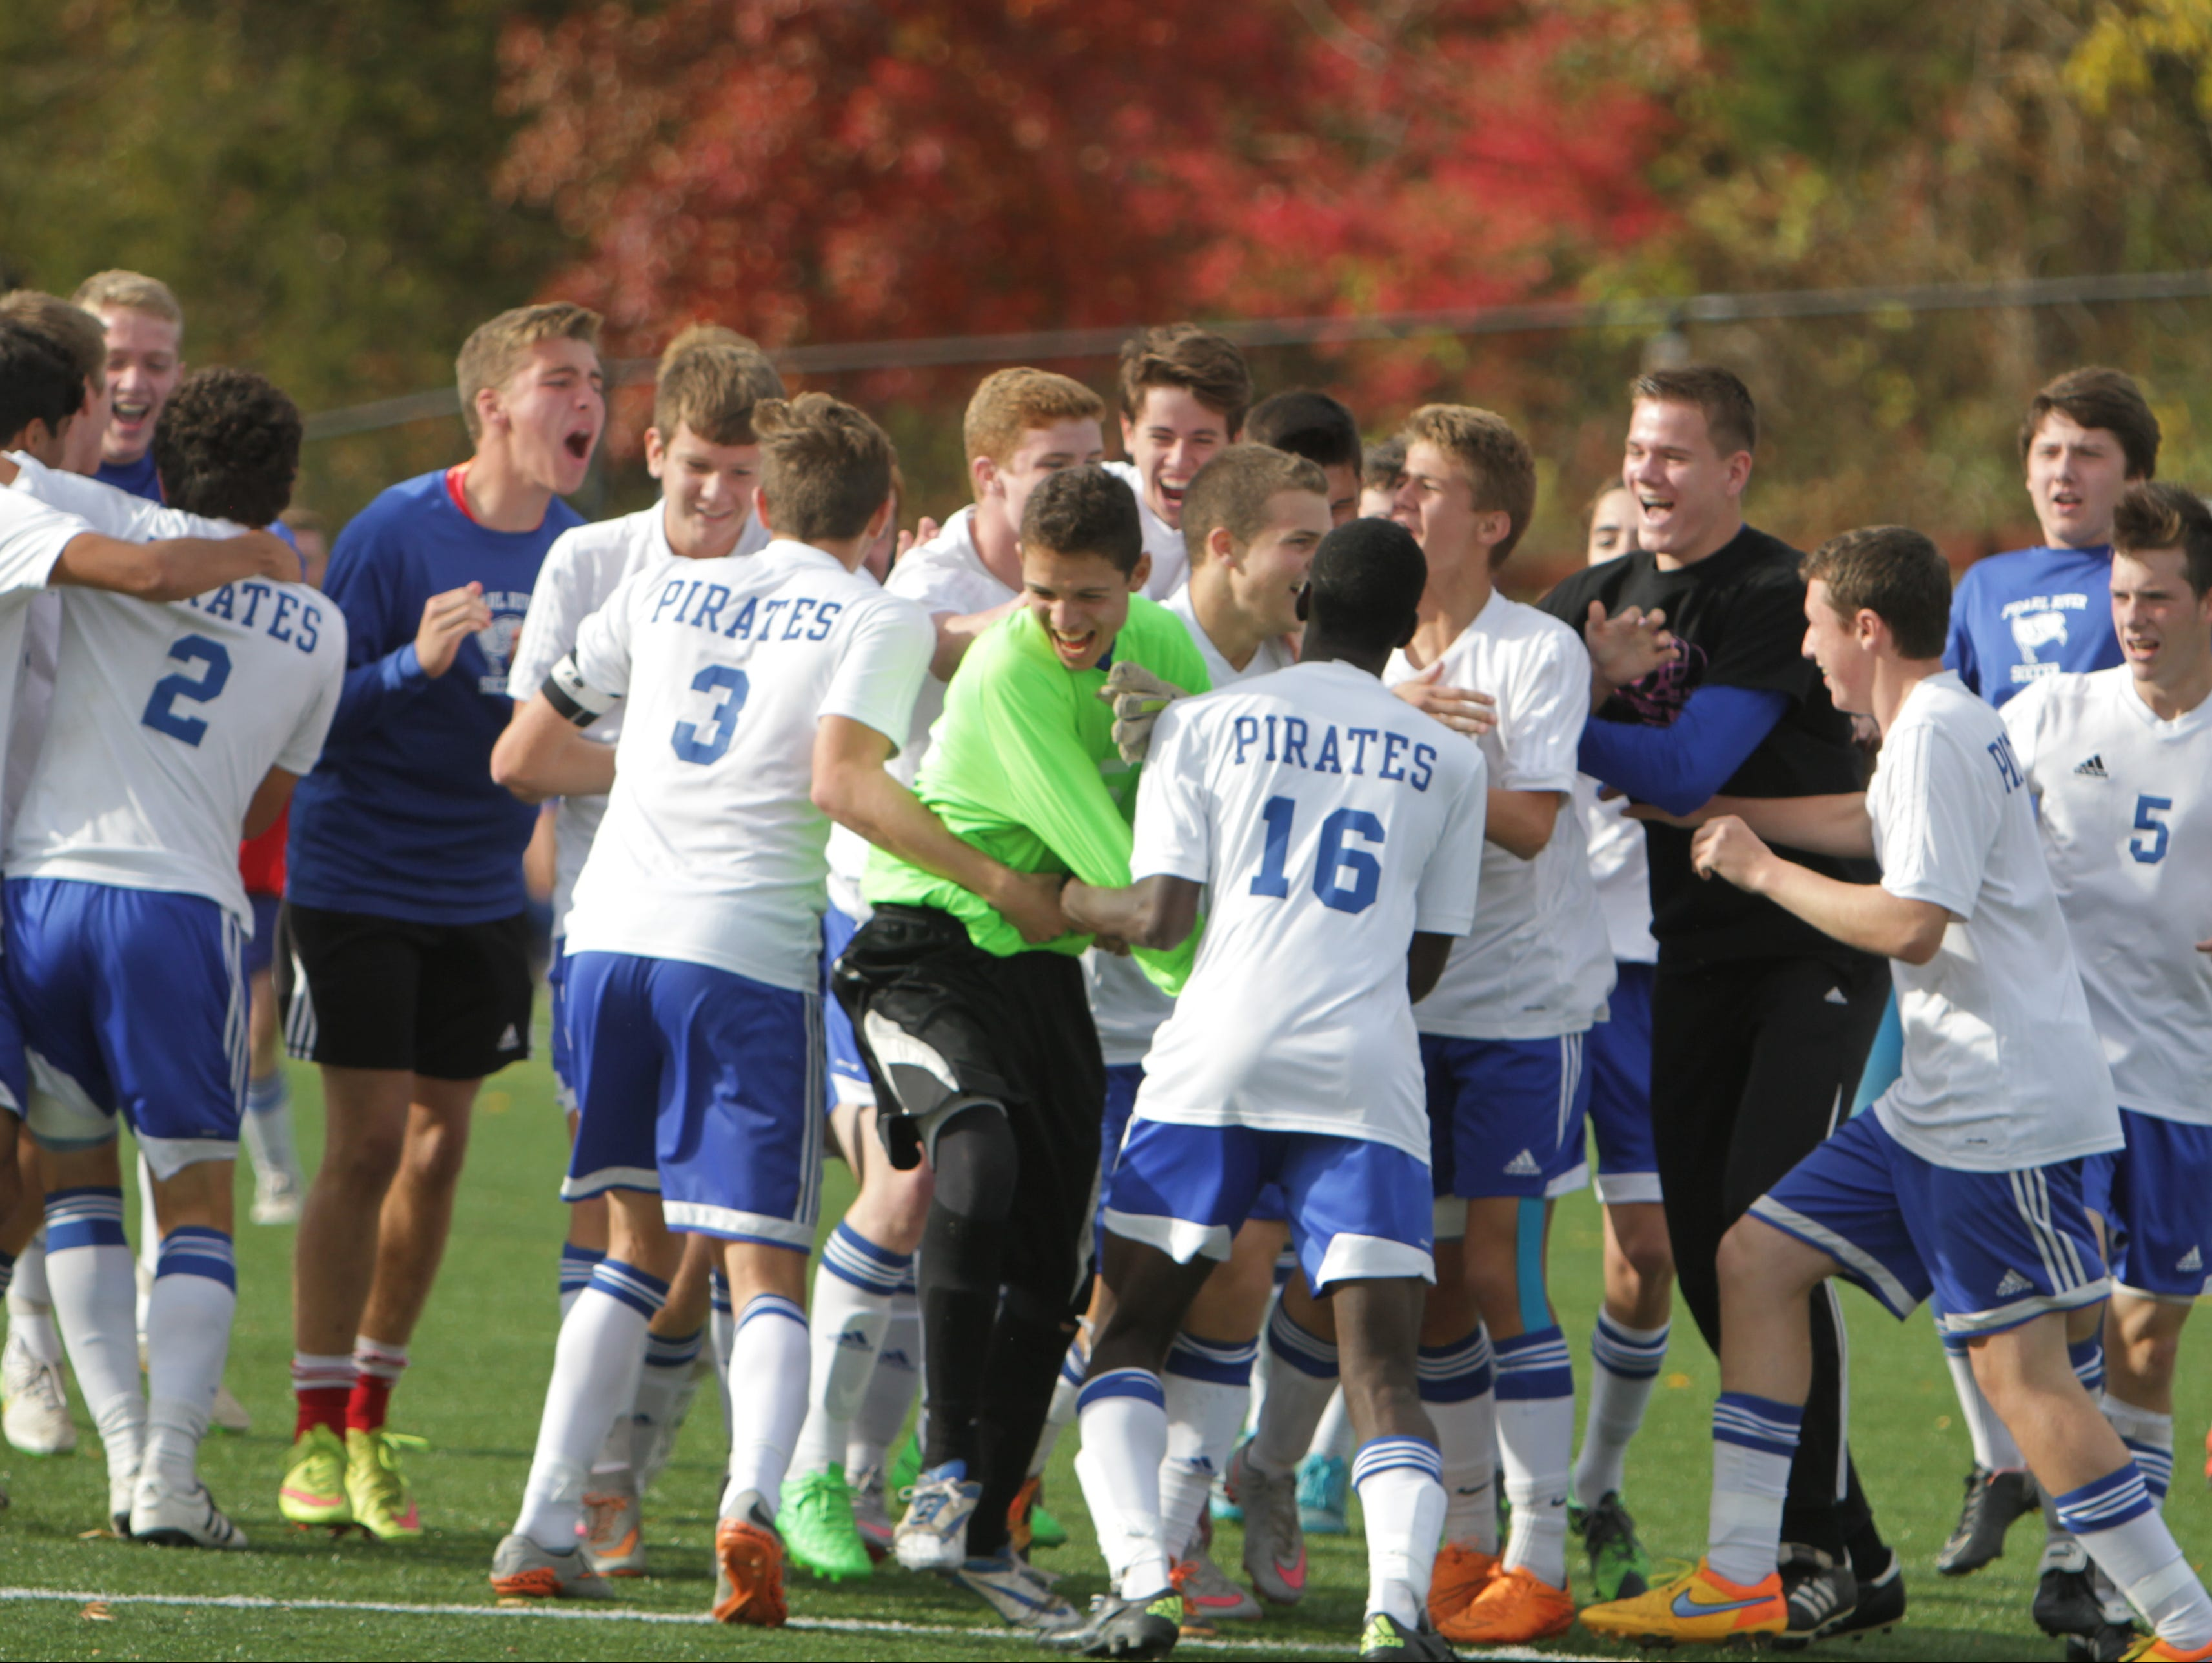 Pearl River defeated Eastchester 2-1 in a Class A semifinal game at Orangetown Soccer Field Complex on Thursday, October 29th, 2015.